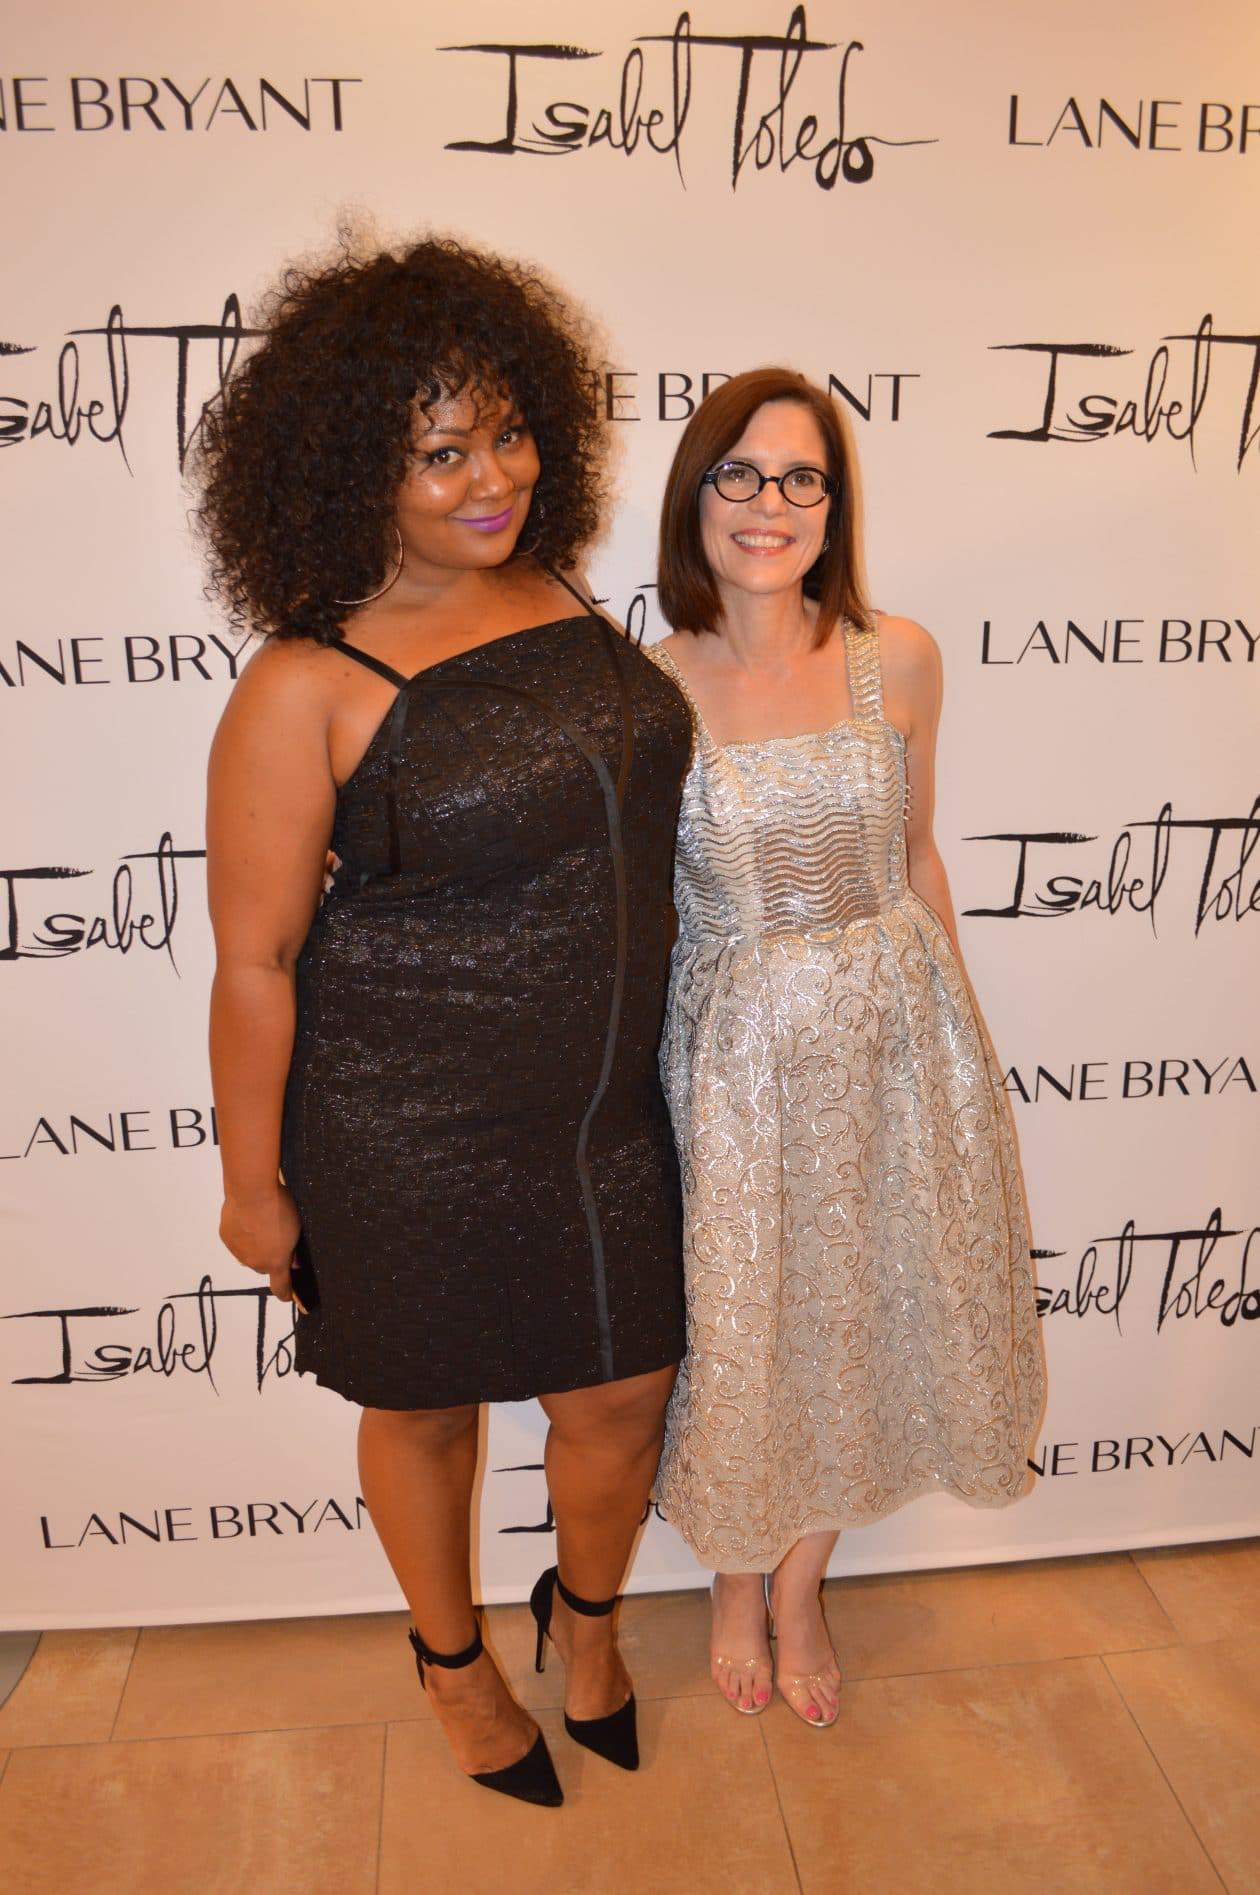 Out and About: Refinery 29 x Isabel Toledo for Lane Bryant Fall Preview